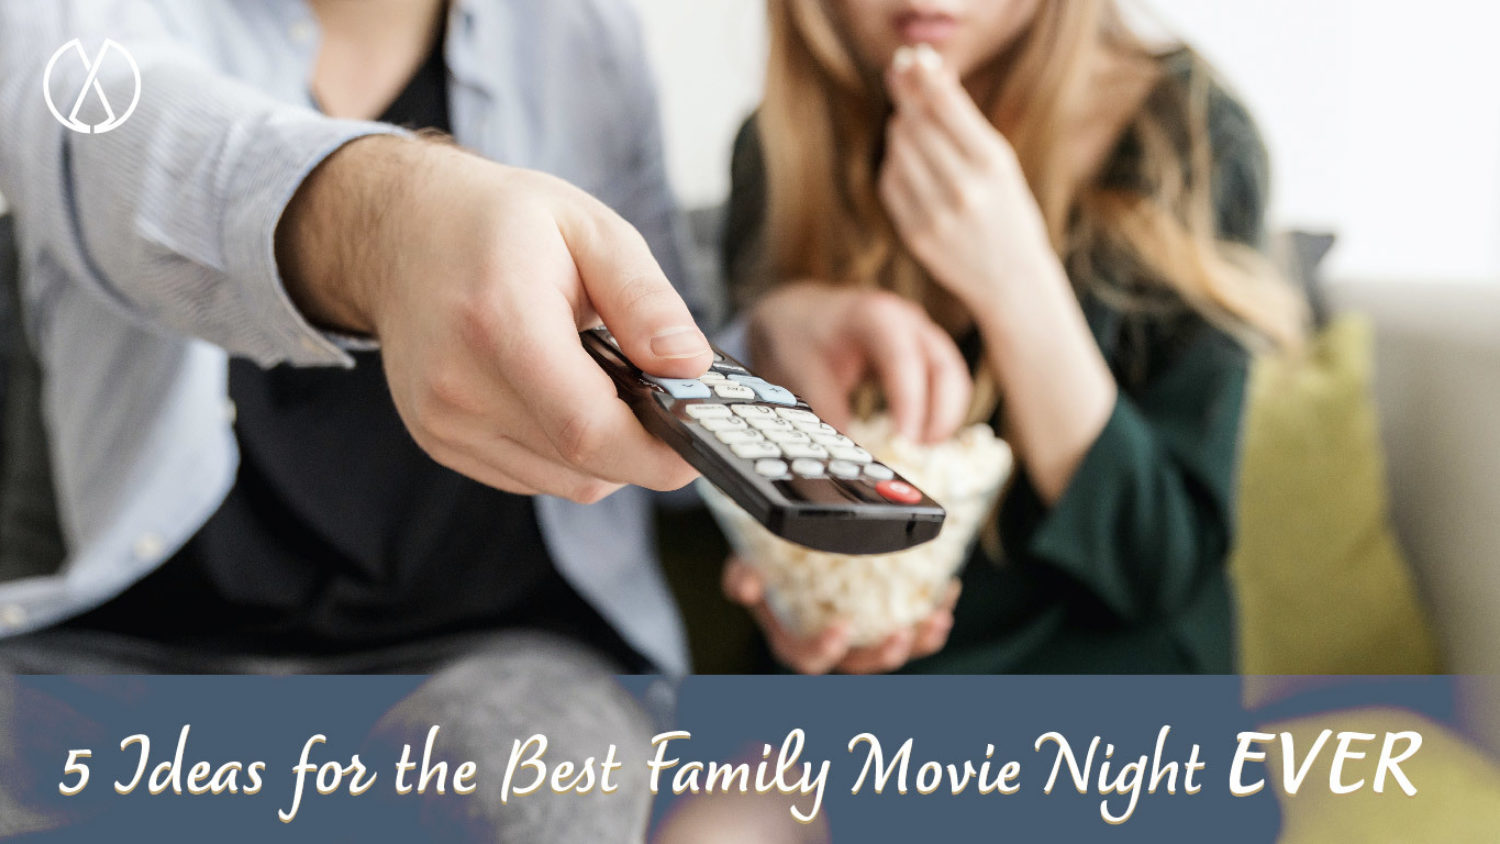 5 Ideas for the Best Family Movie Night Ever